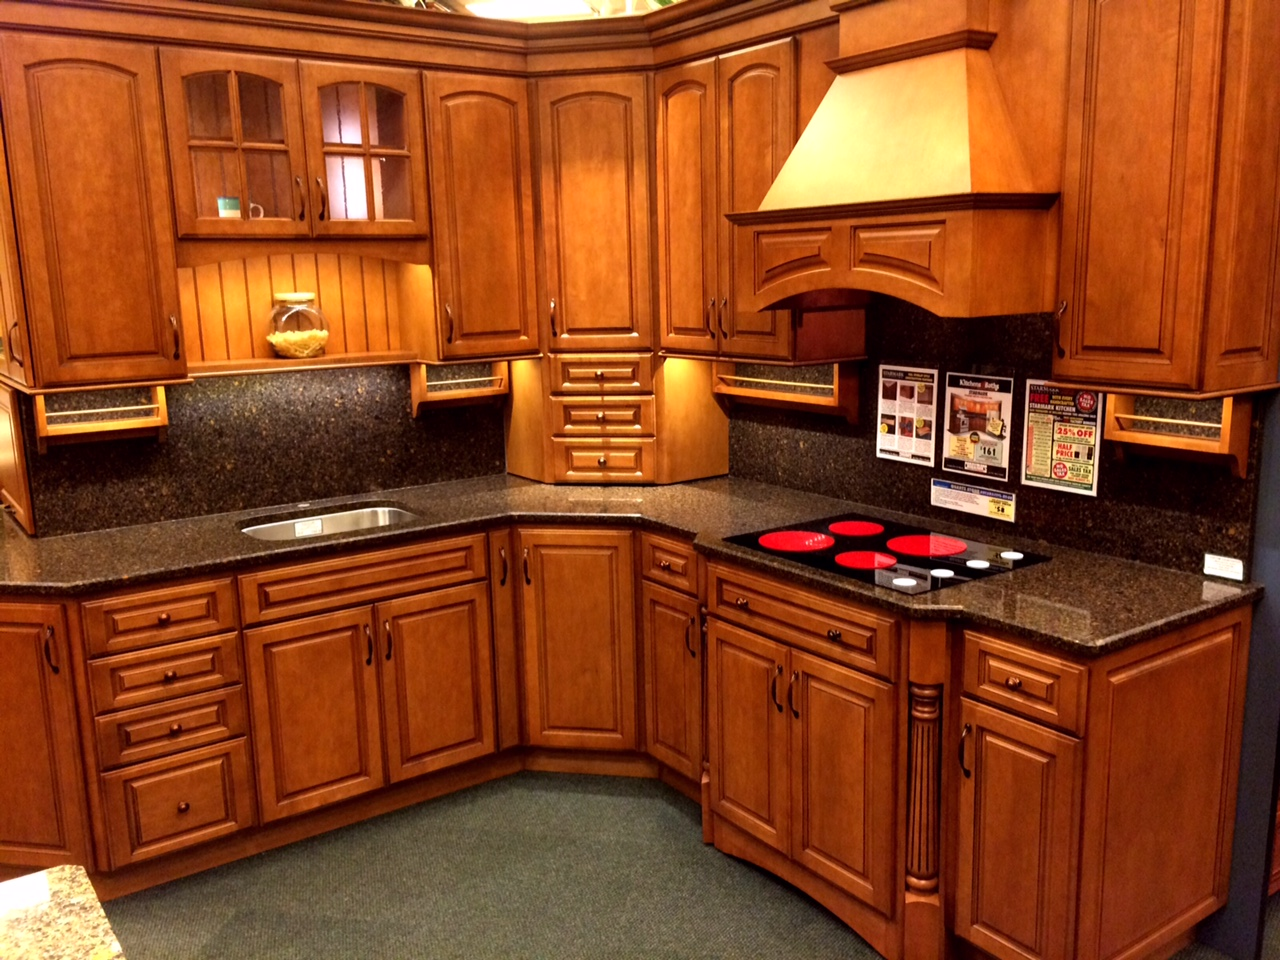 Consumers Kitchens Baths Named Exclusive Dealer Of Iluma Under Cabinet Lighting In Long Island Ny